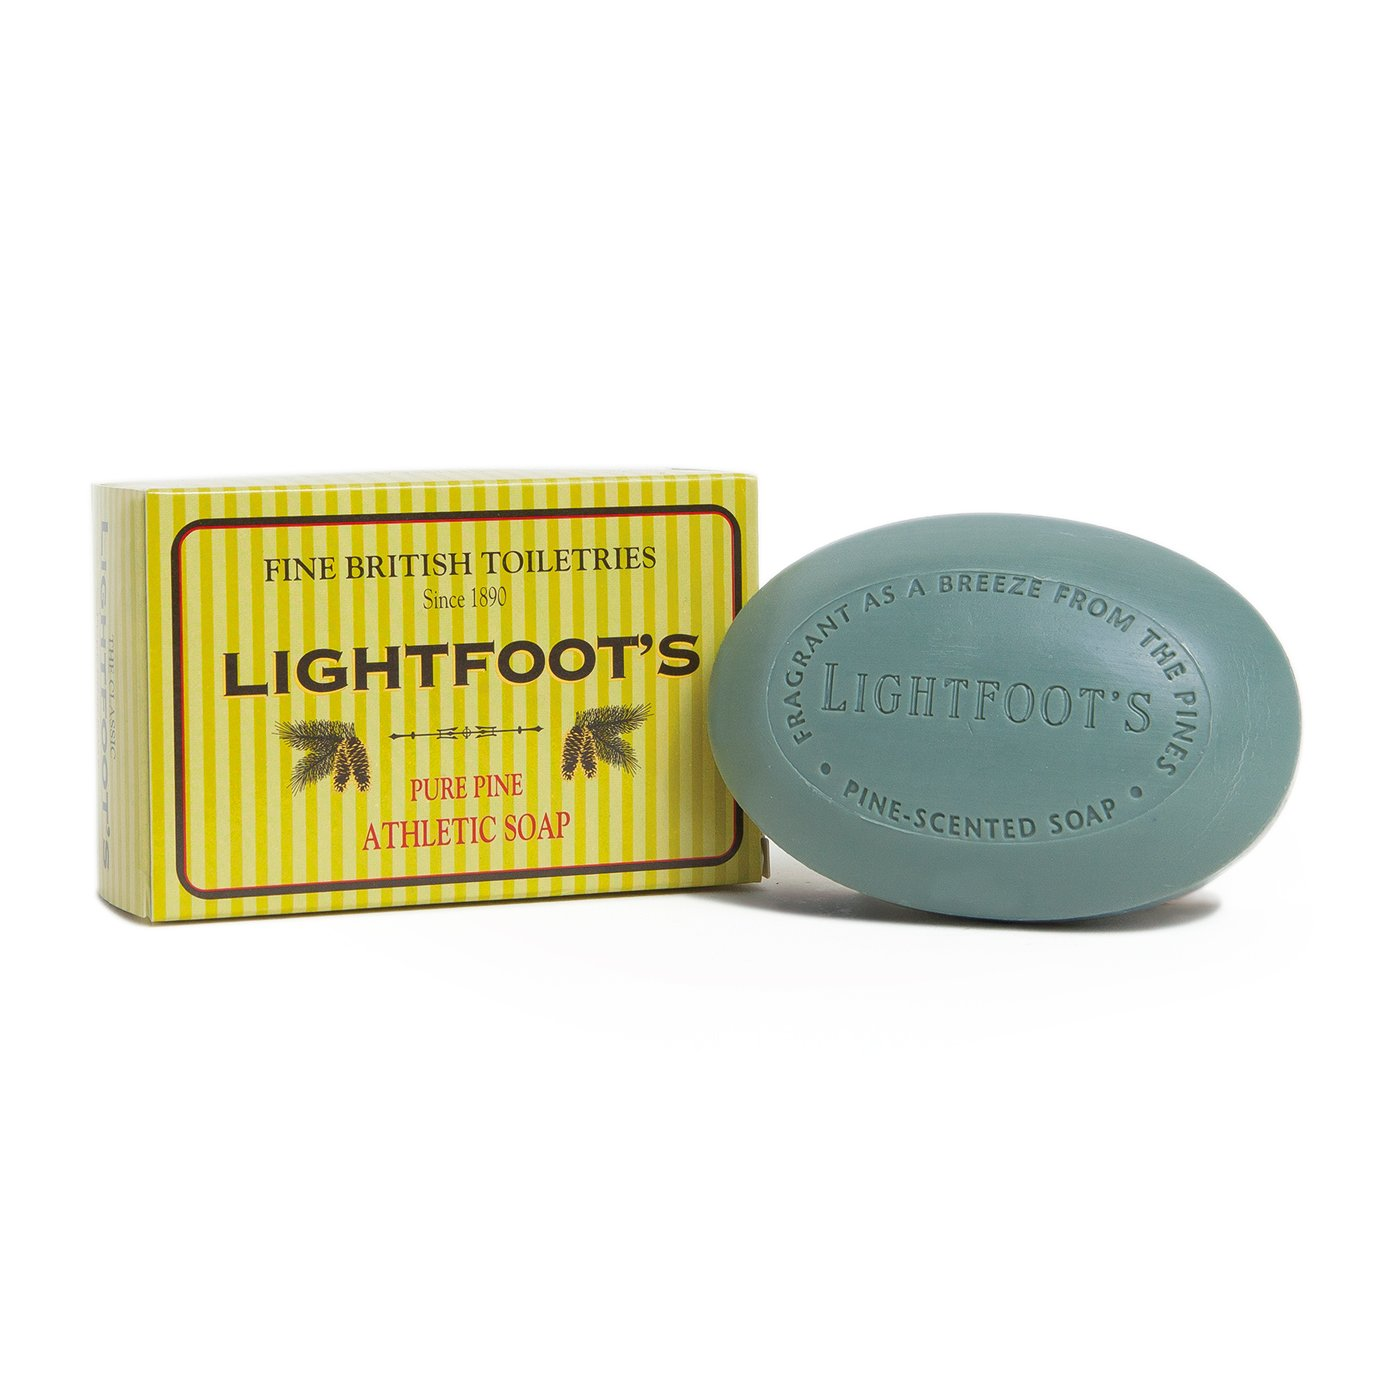 Lightfoot's Pure Pine Athletic Soap